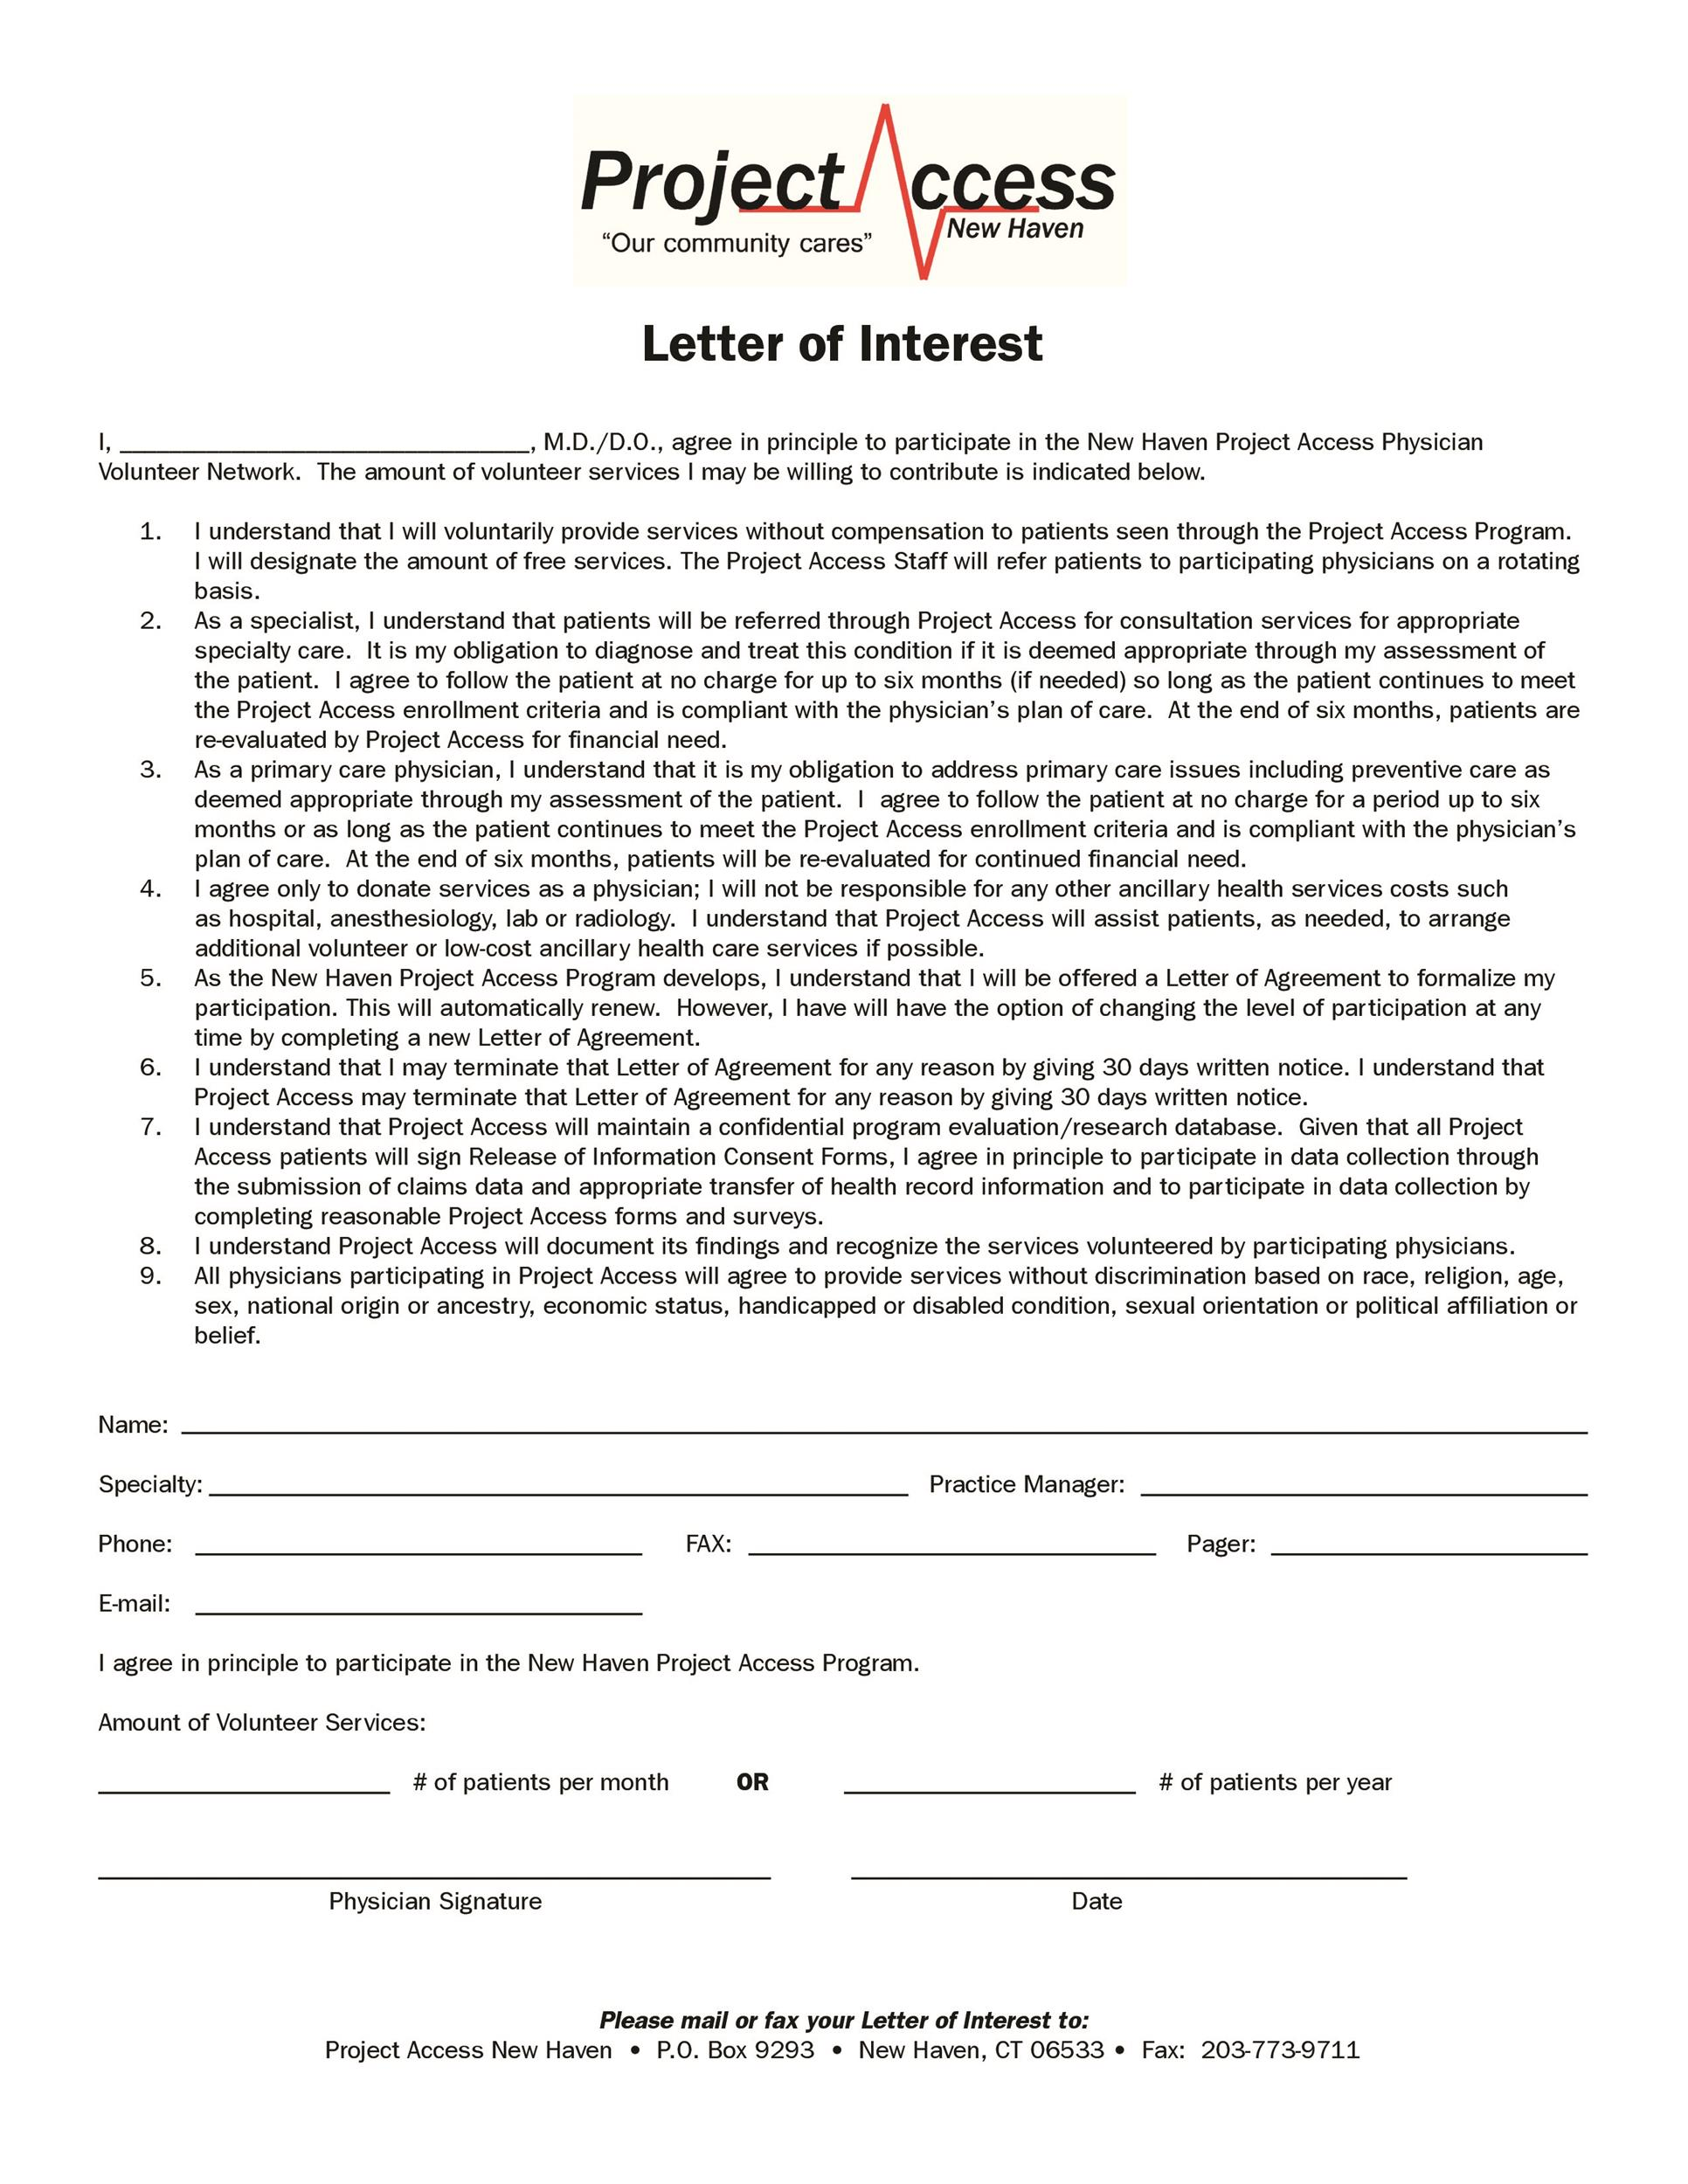 Letter of Interest